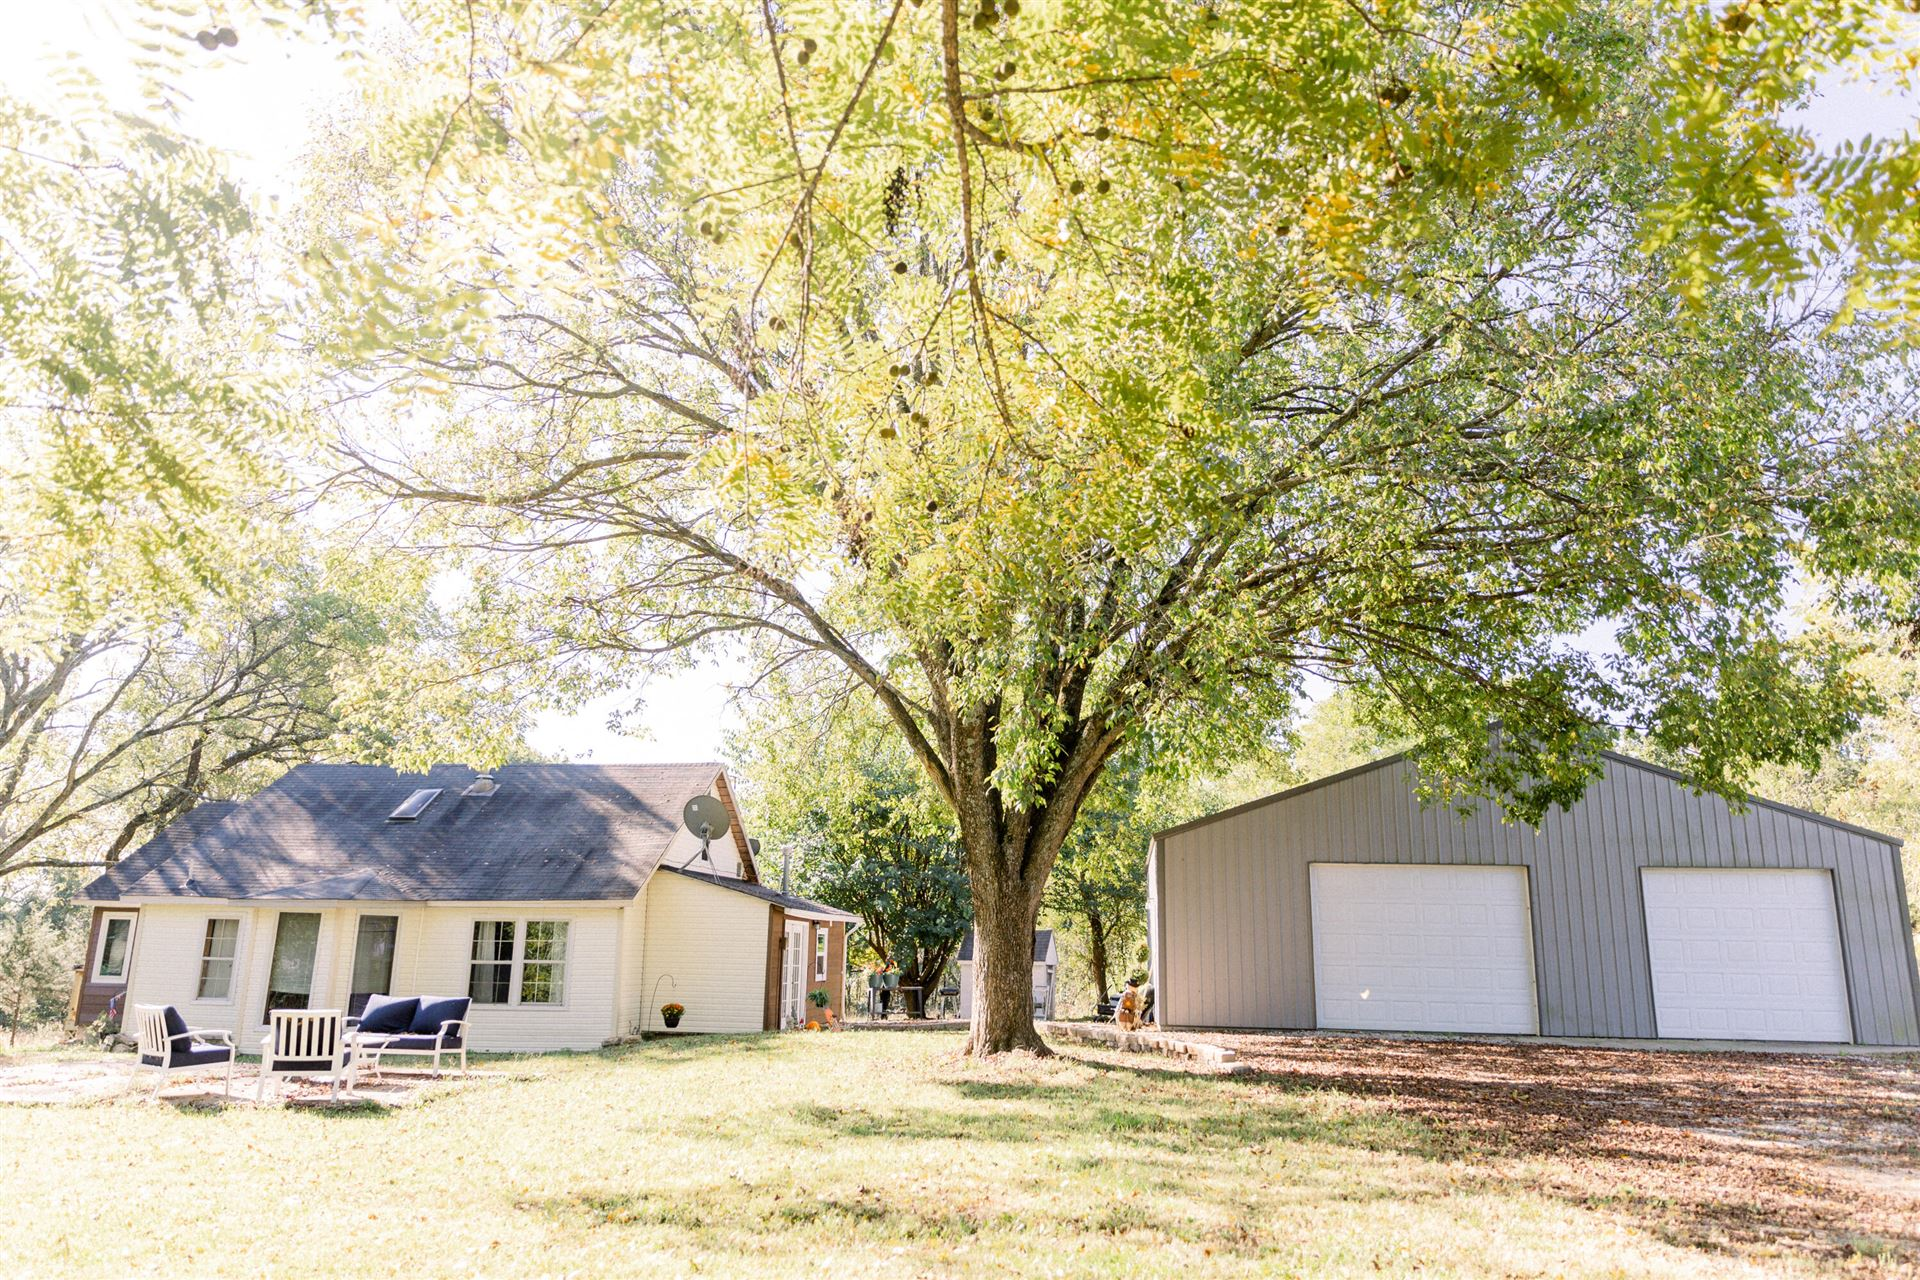 Photo of 7964 Co Rd 0-535 Road, Ava, MO 65608 (MLS # 60203804)